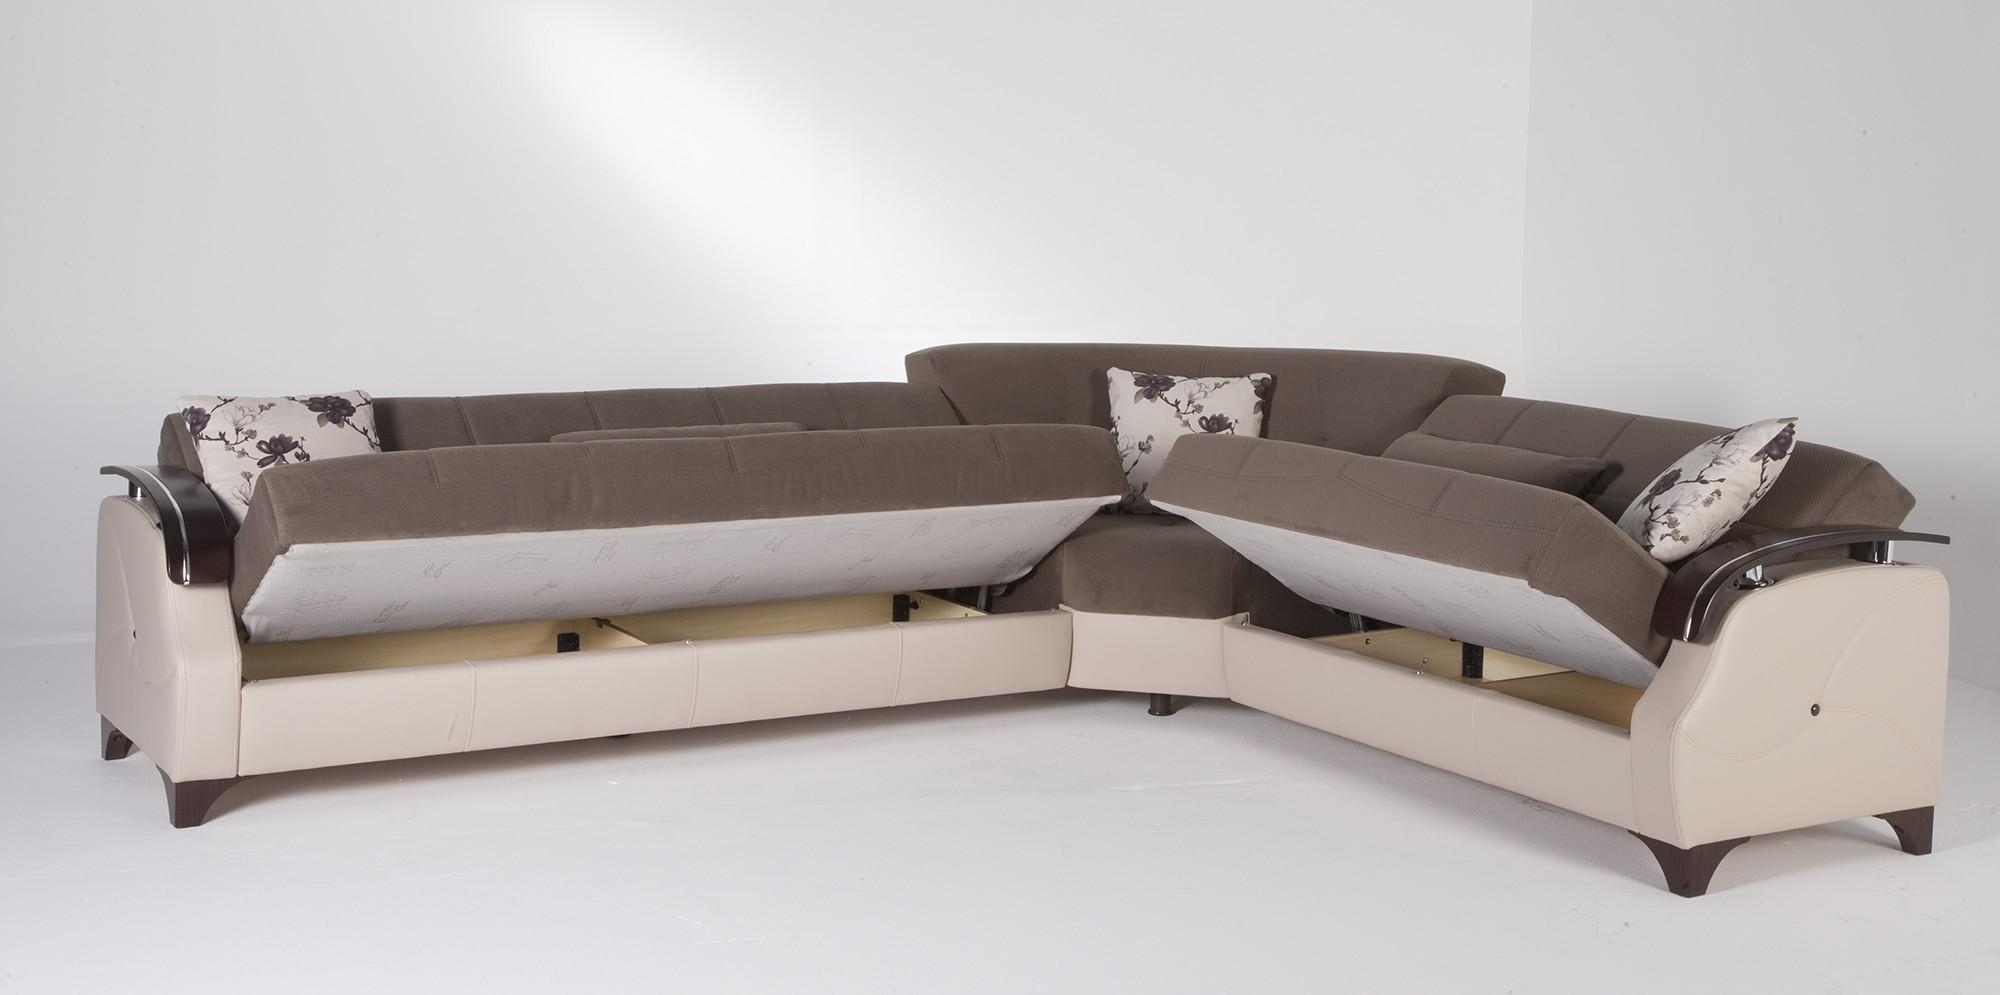 Sofas : Marvelous Chaise Sofa Small Sectional Sofa Couch Bed Regarding Sectional Sofas With Sleeper And Chaise (View 21 of 21)